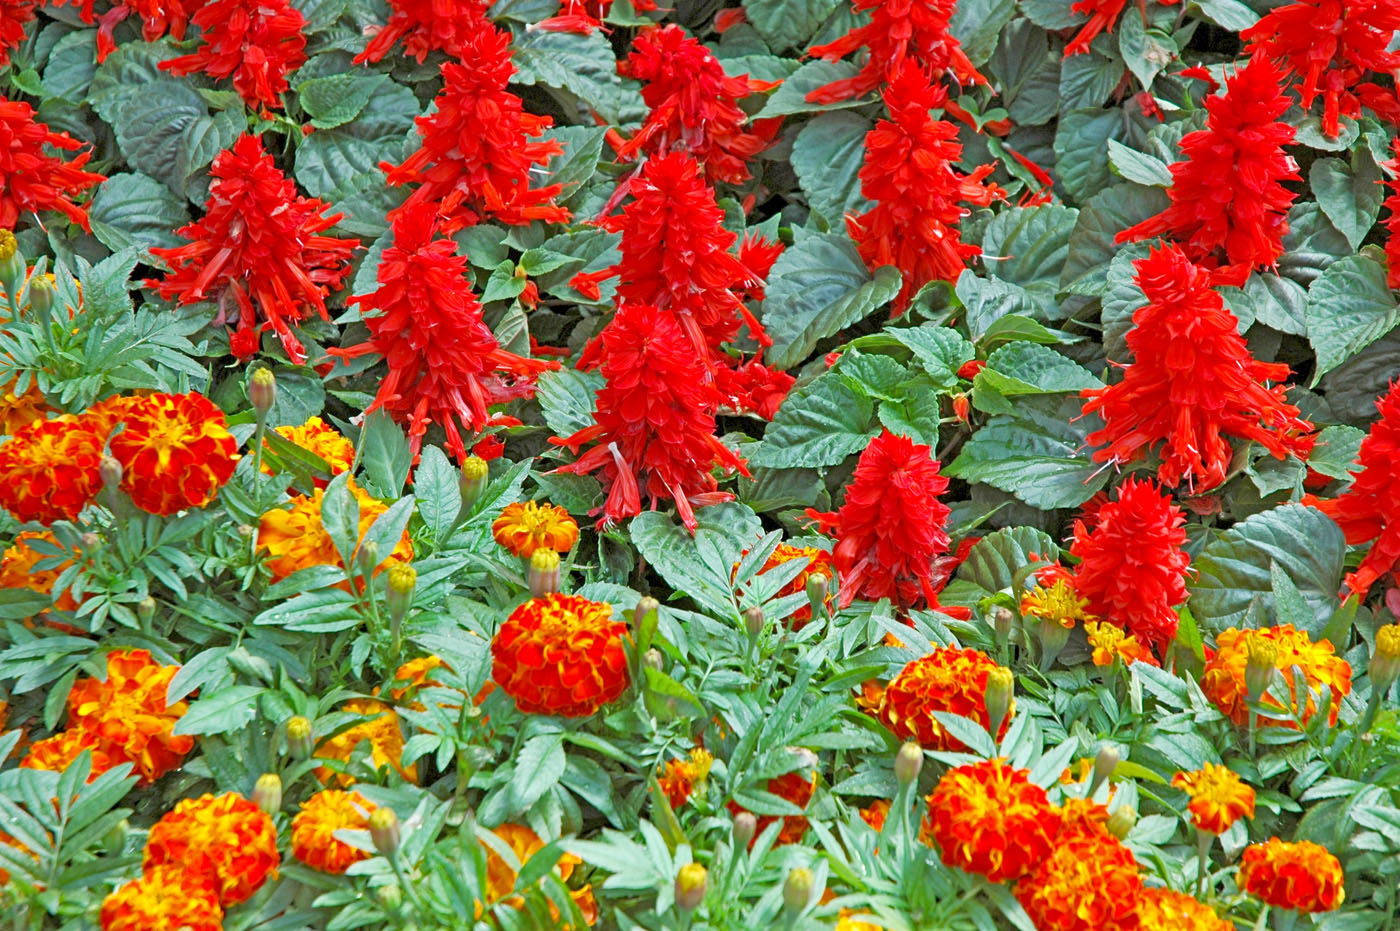 Picante Sizzler Are Hot Salvias For Garden Mississippi